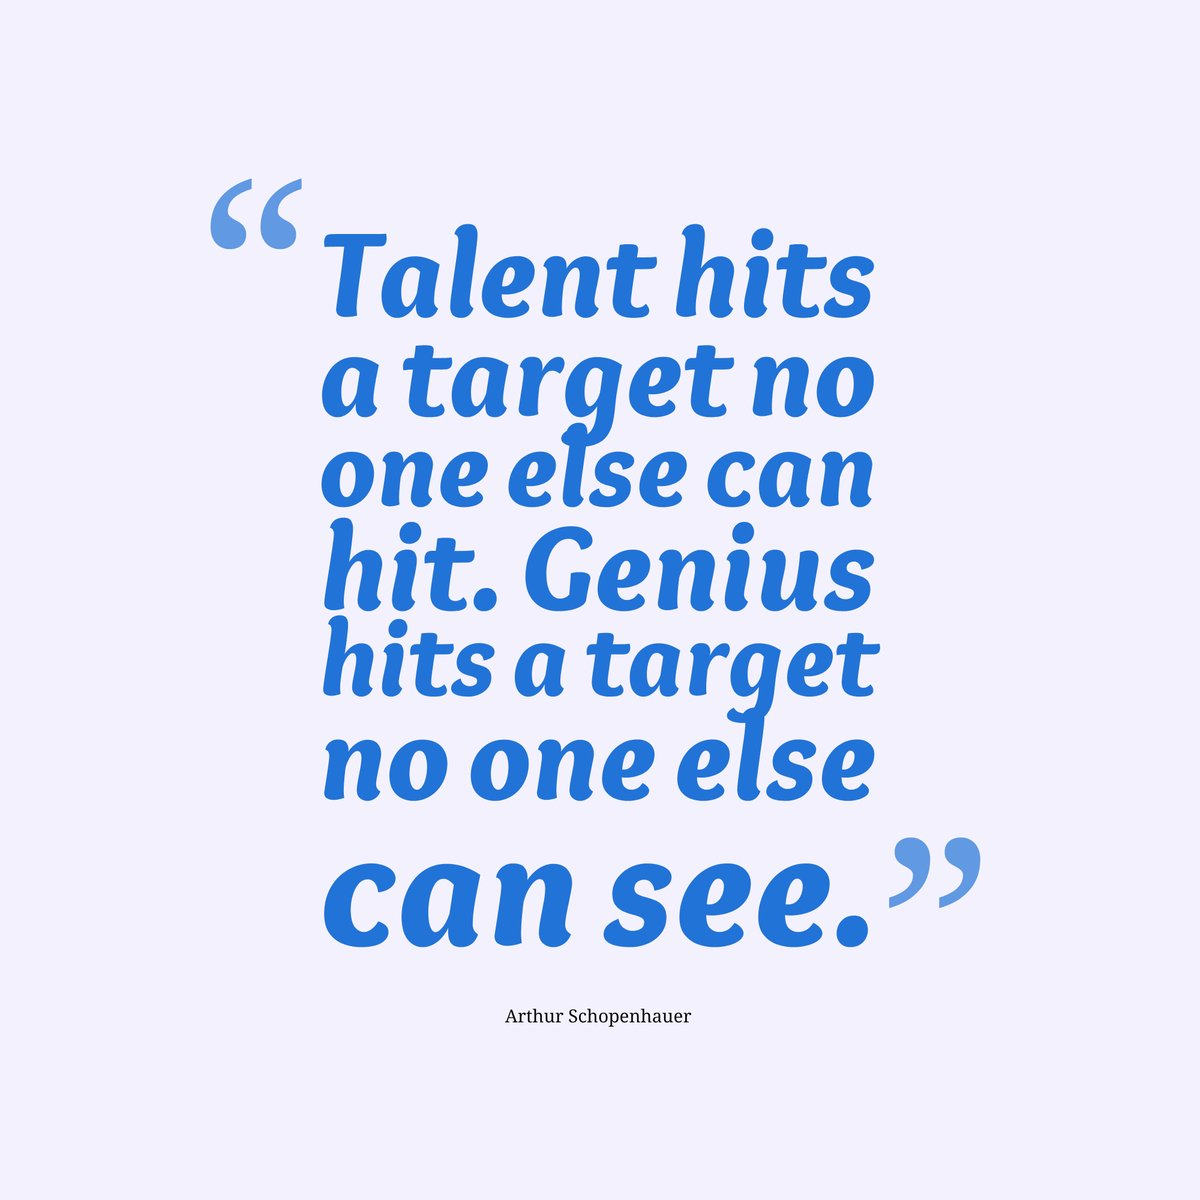 Talents quote Talent hits a target no one else can hit. Genius hits a target no one else can s